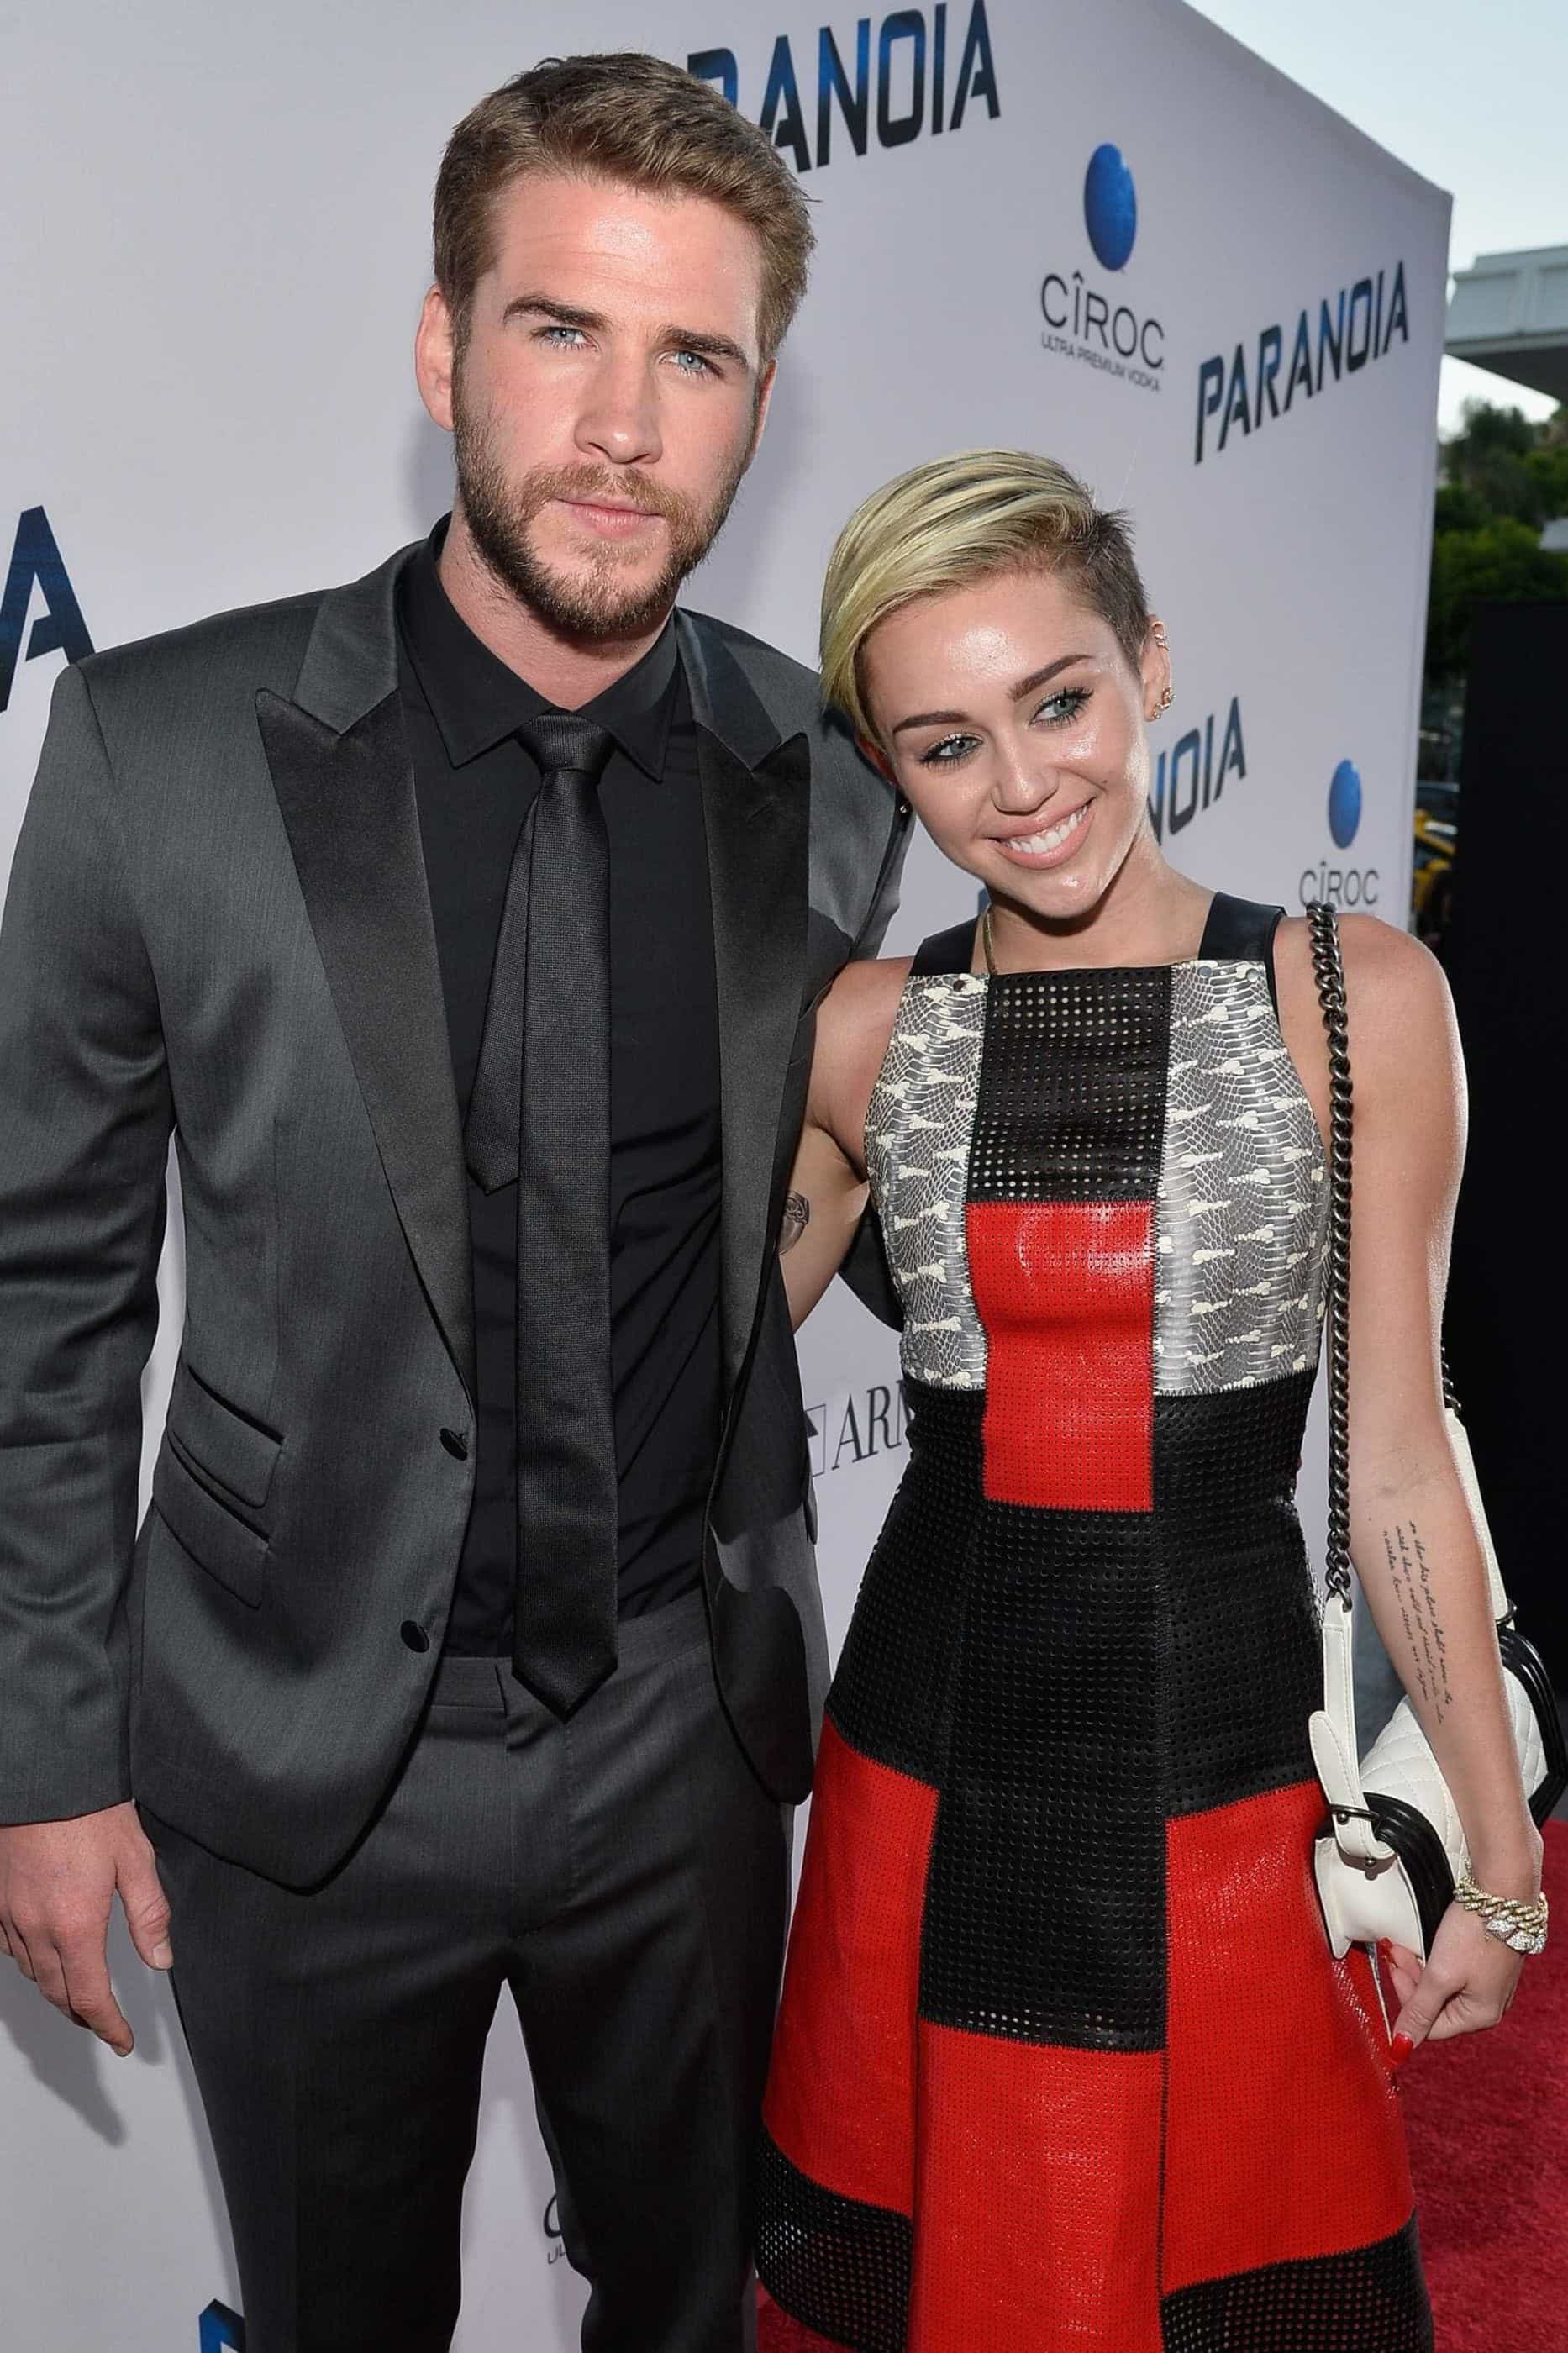 Casados de fresco e animados! Miley Cyrus divulga novo vídeo do casamento